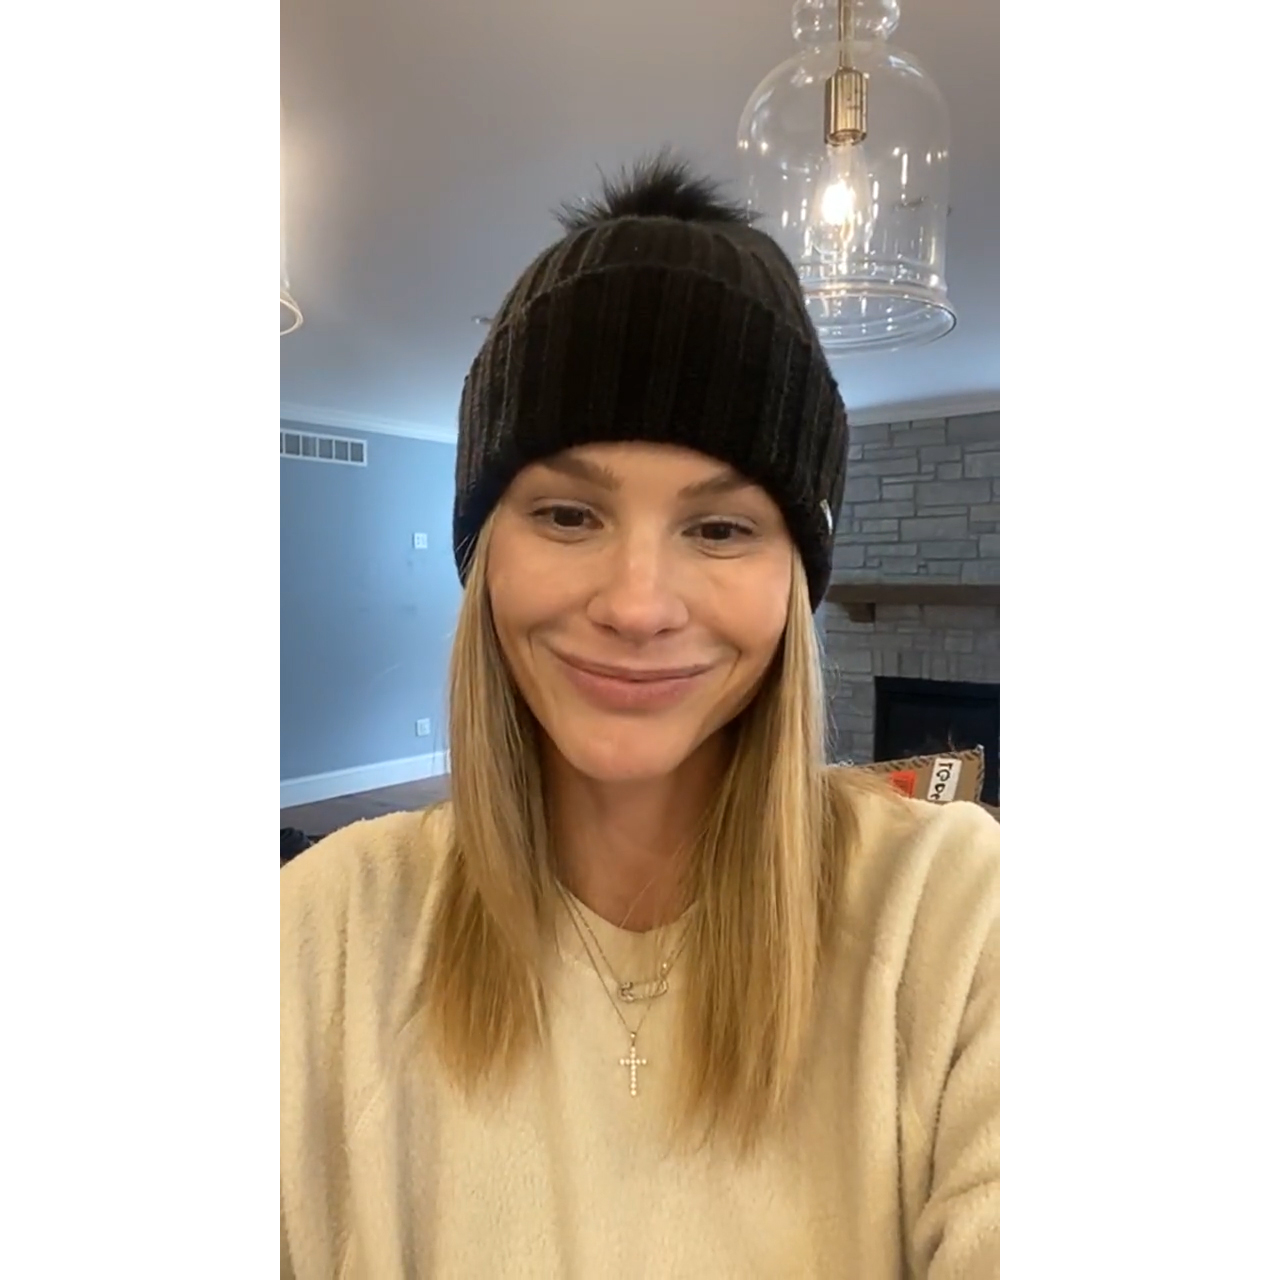 Meghan King Shows Off New Home, Says No One Apart From Her, Kids Is Moving In